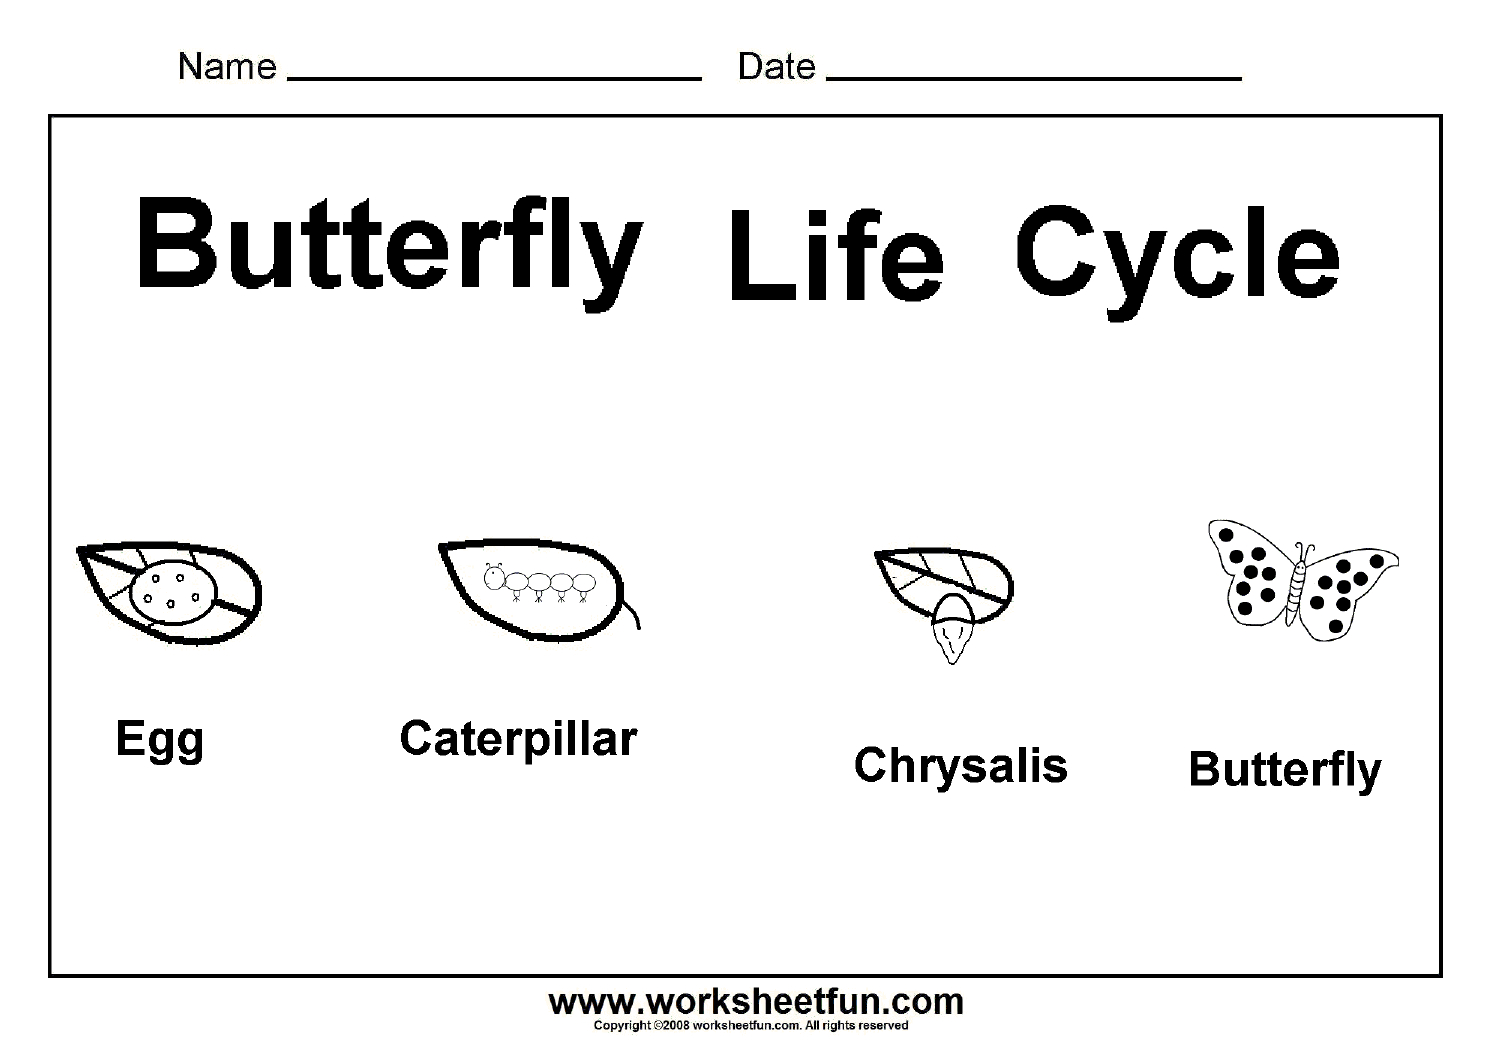 Worksheet : Butterfly Life Cycle One Free Printable Science - Free Plant Life Cycle Worksheet Printables